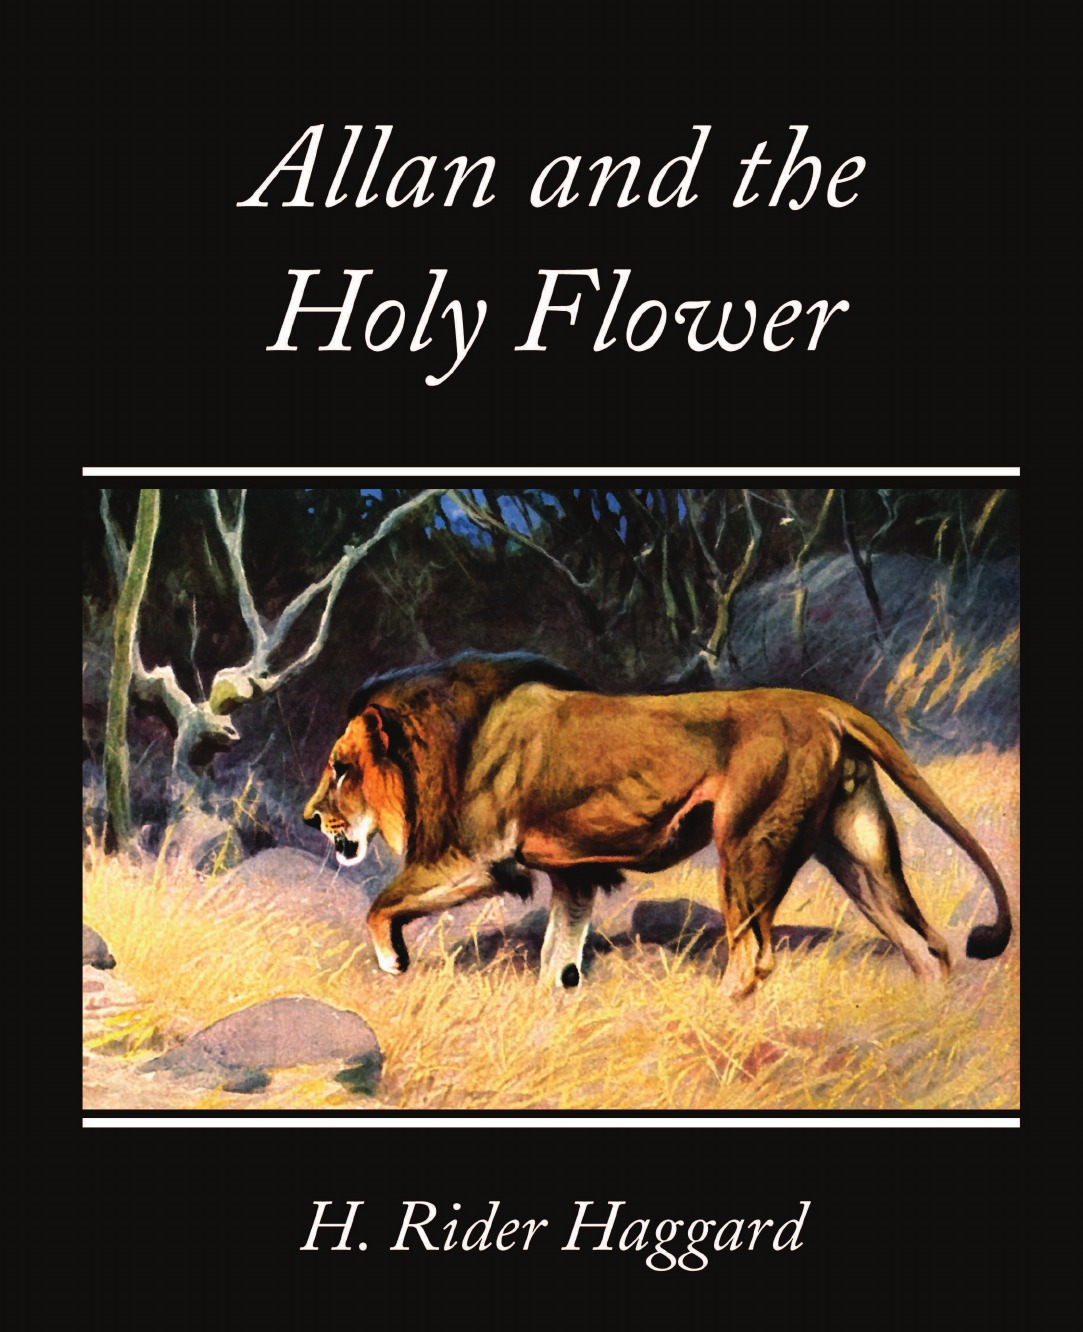 H. Rider Haggard Allan and the Holy Flower